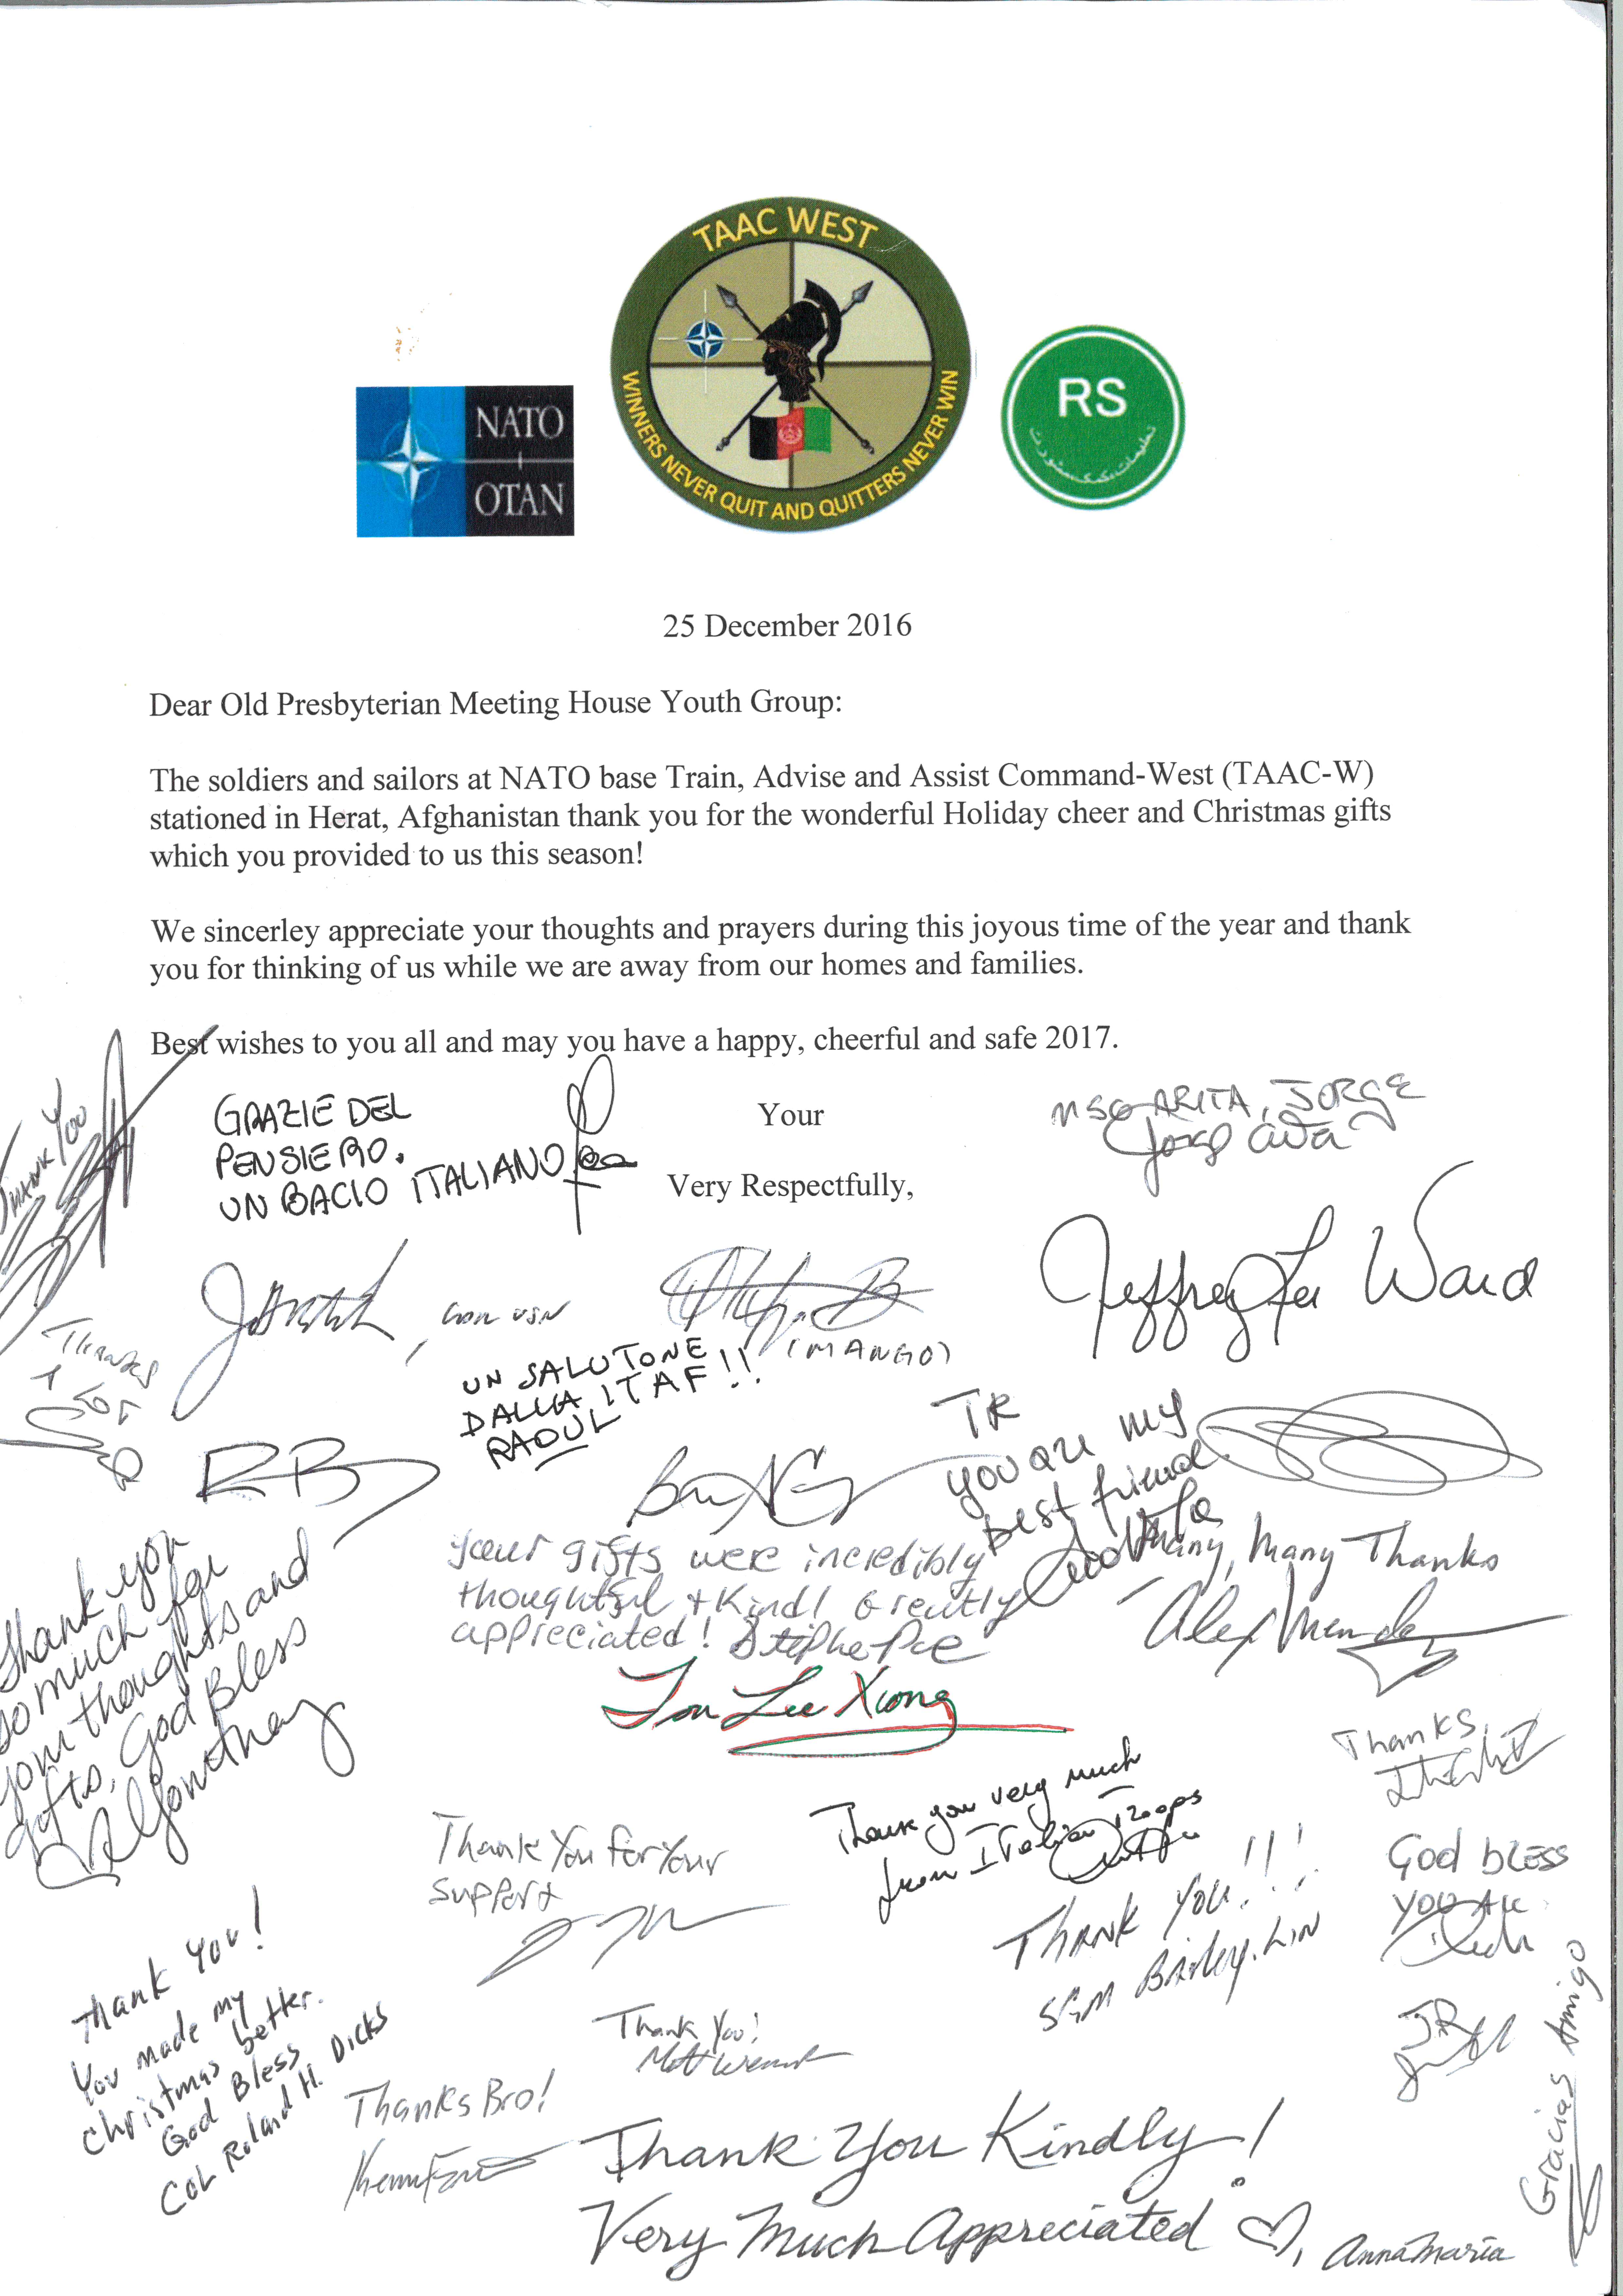 Letter from NATO TAAC-W